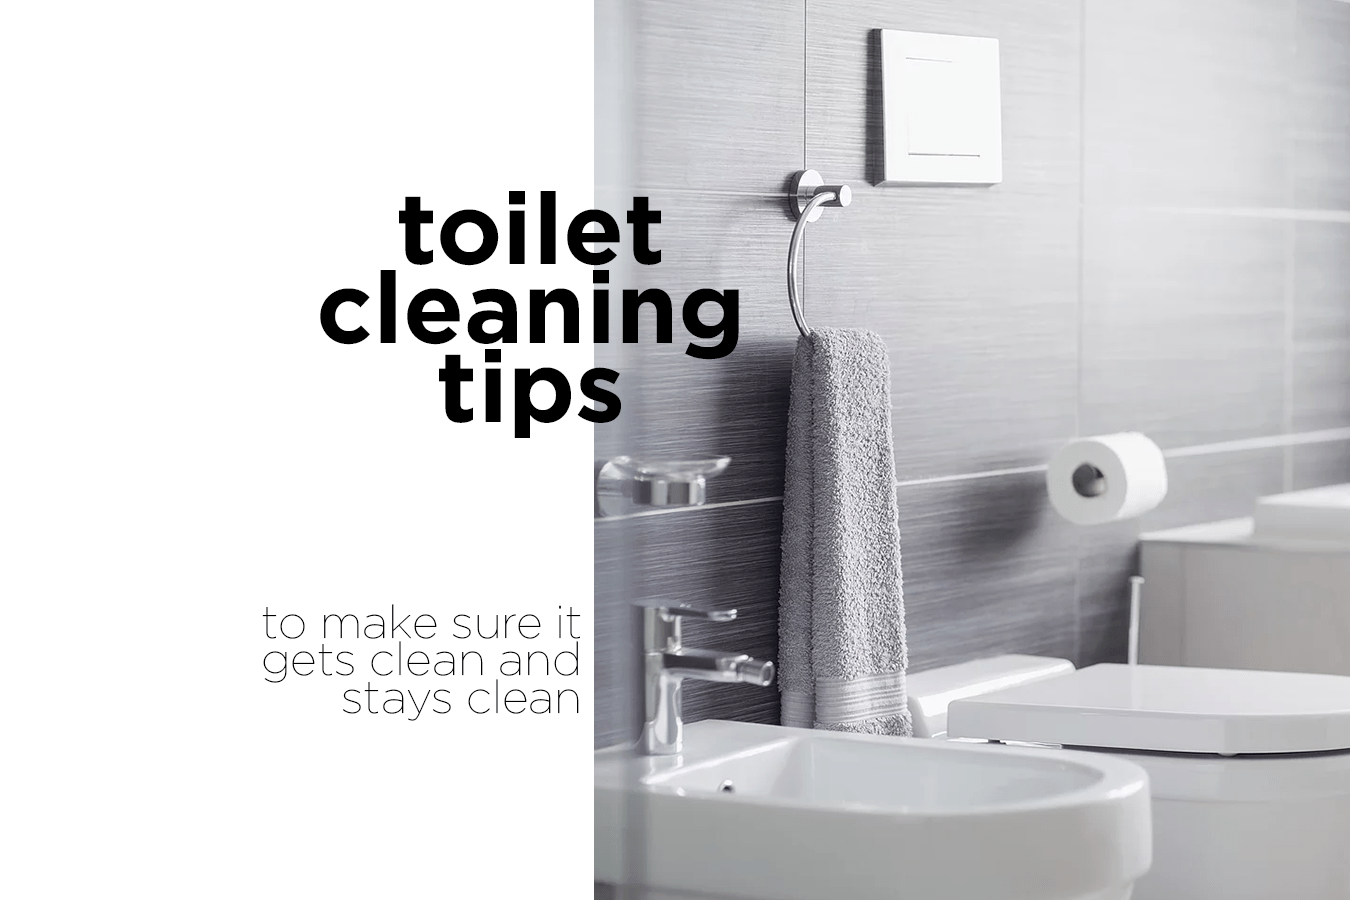 Toilet Cleaning 101 - Painless & Easy